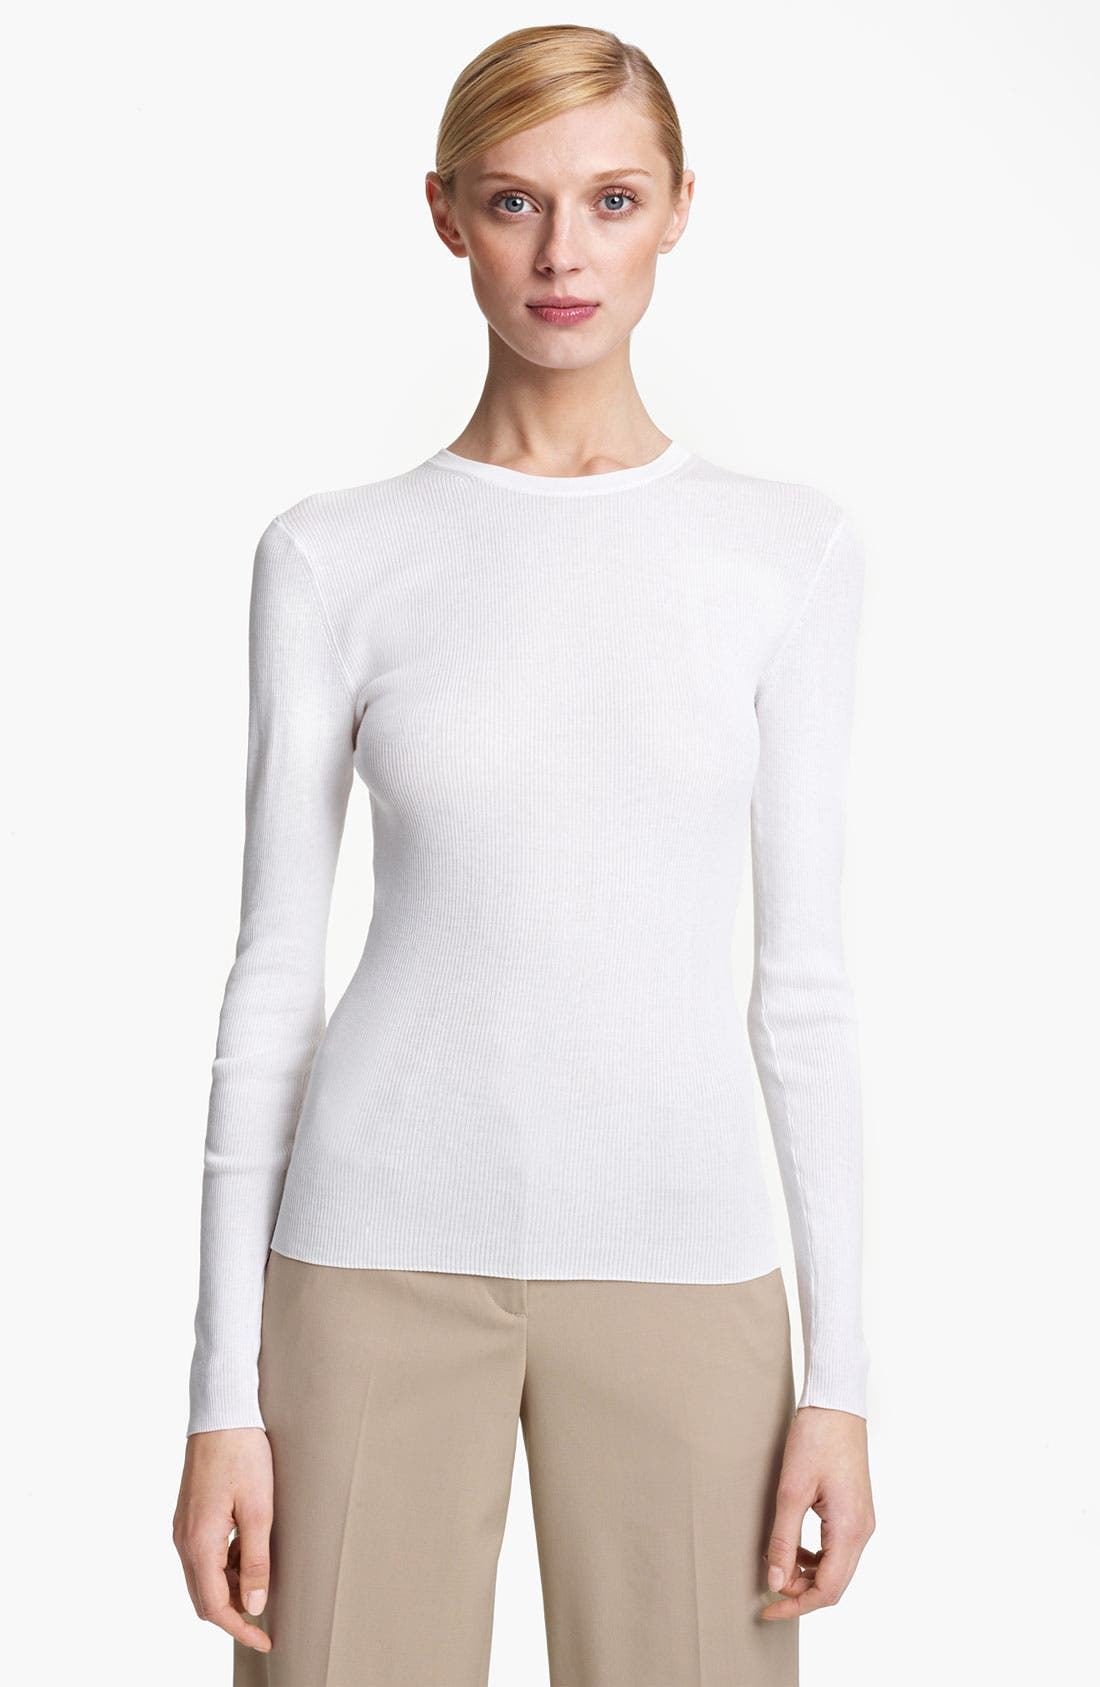 Main Image - Michael Kors Featherweight Cotton Crewneck Top